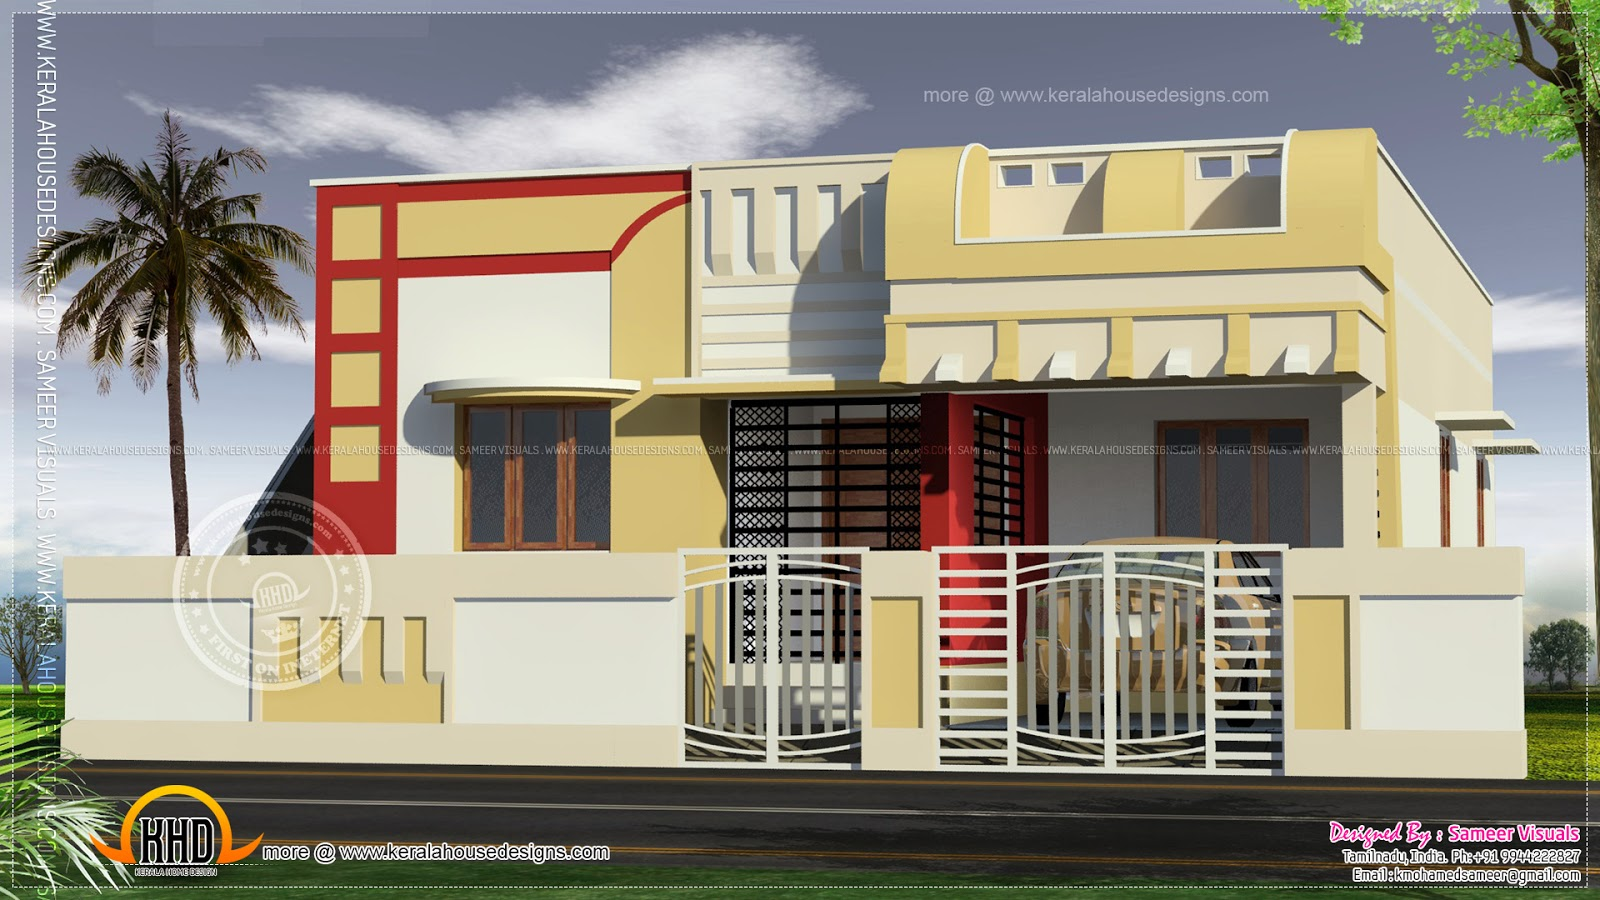 Small south indian home design kerala home design and for Indian home exterior design photos middle class